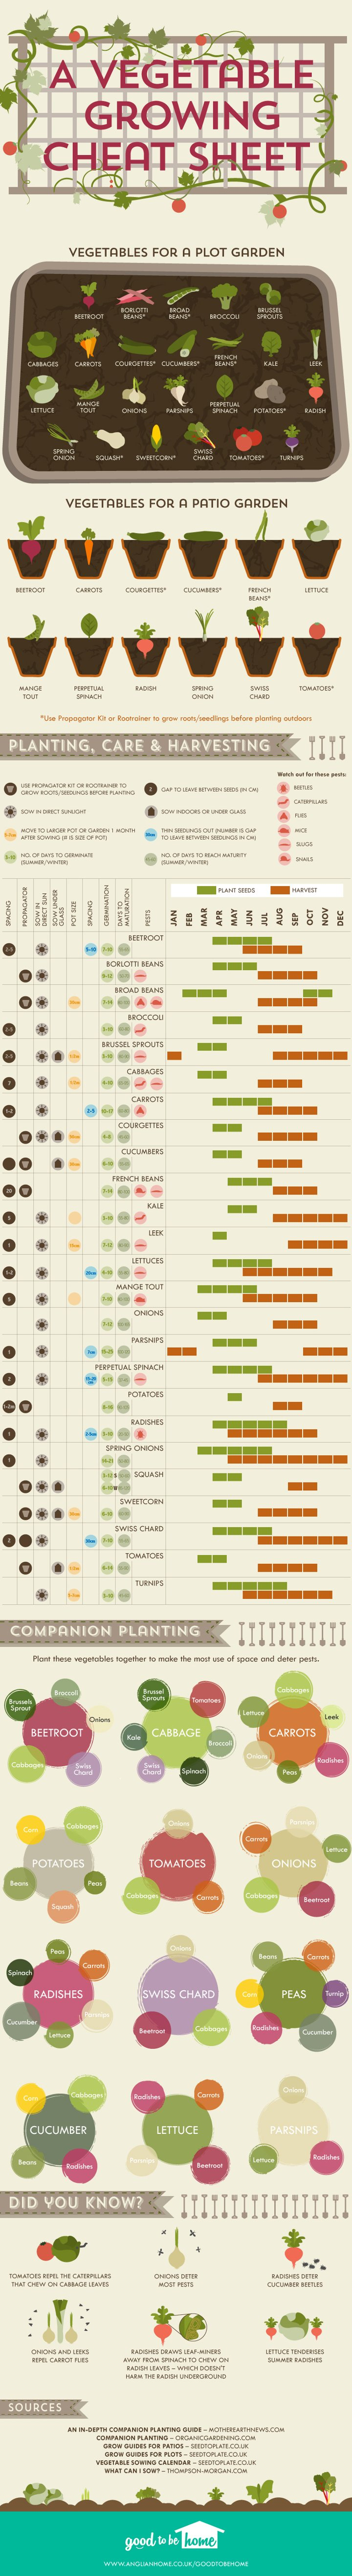 Vegetable-growing-cheat-sheet_720